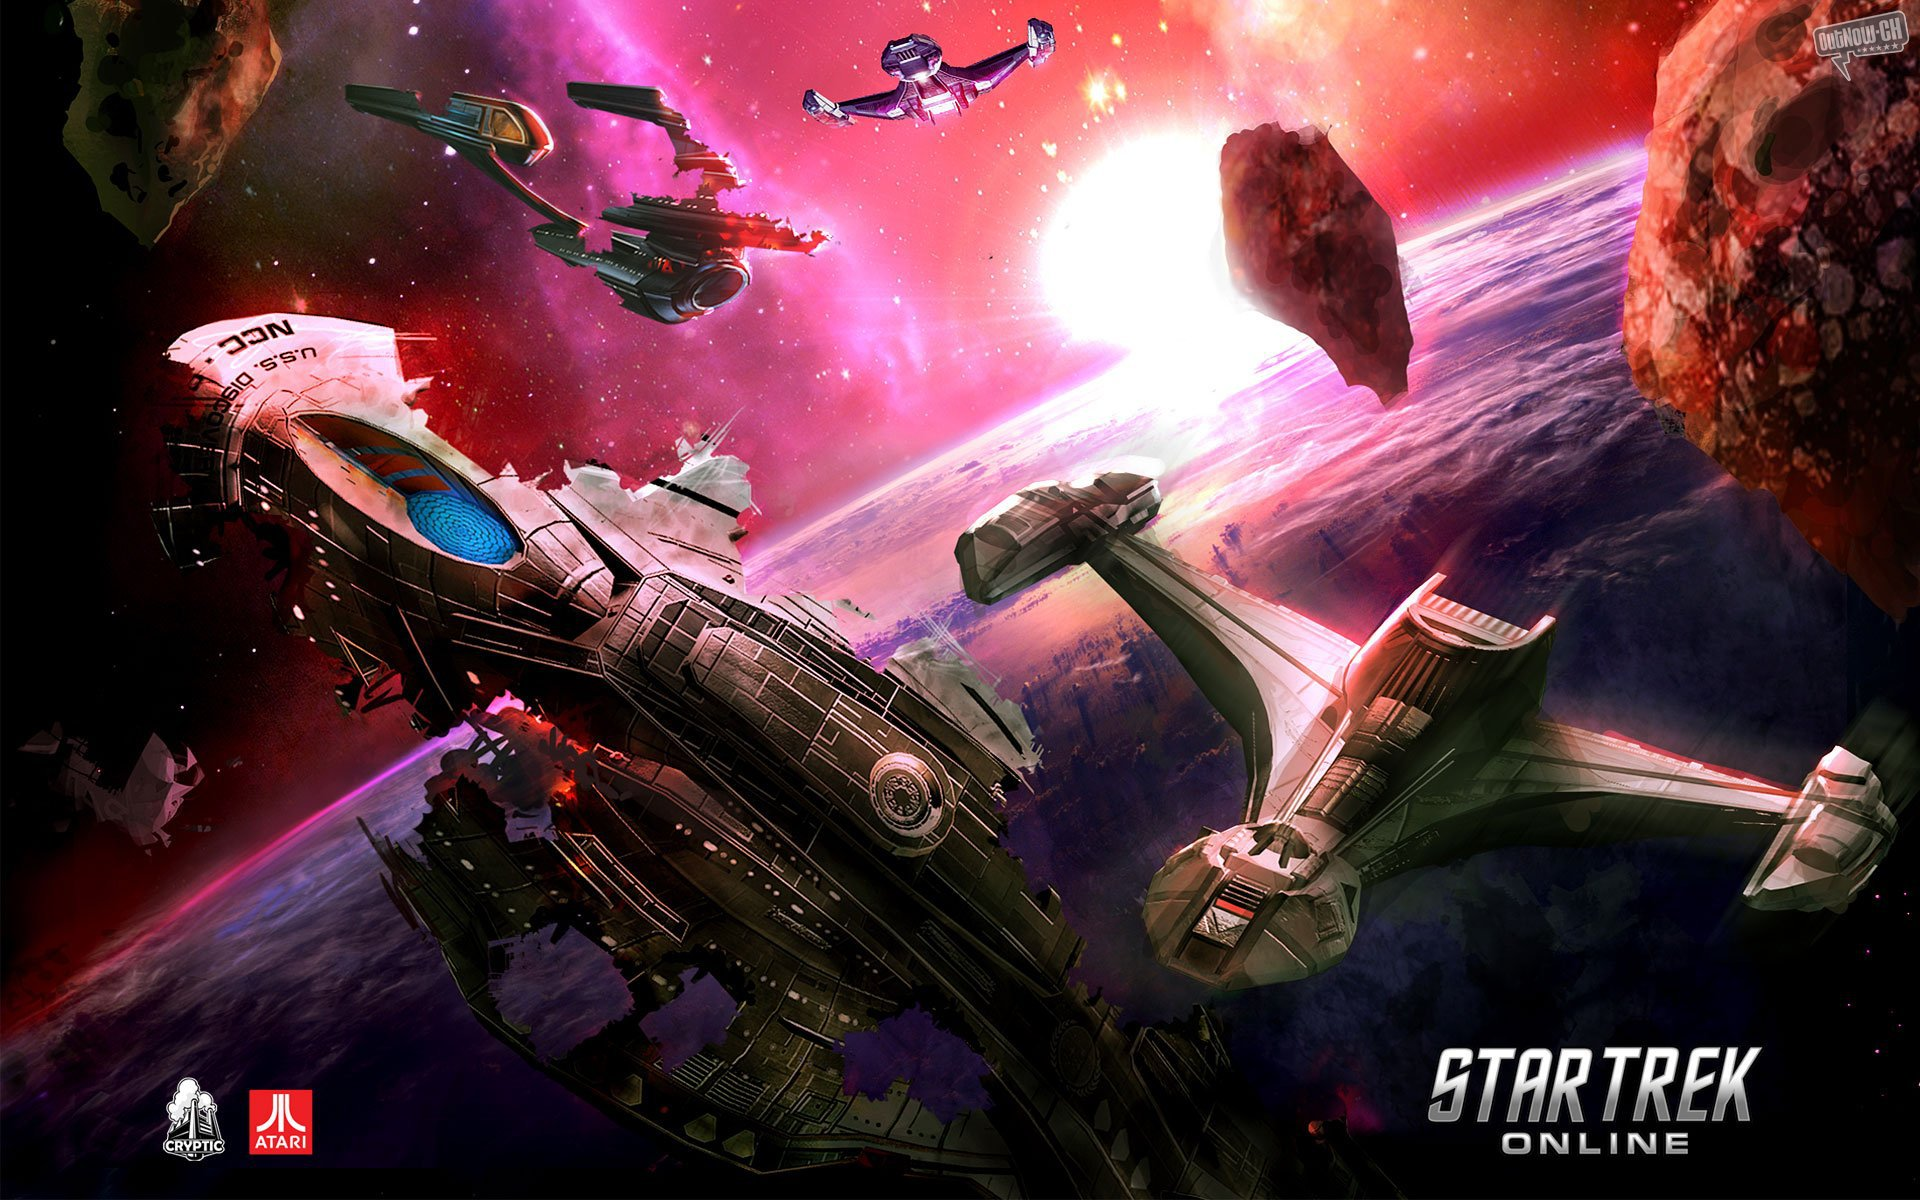 Animated Wallpaper Windows 8 Free Star Trek Online Wallpapers Star Trek Online Stock Photos